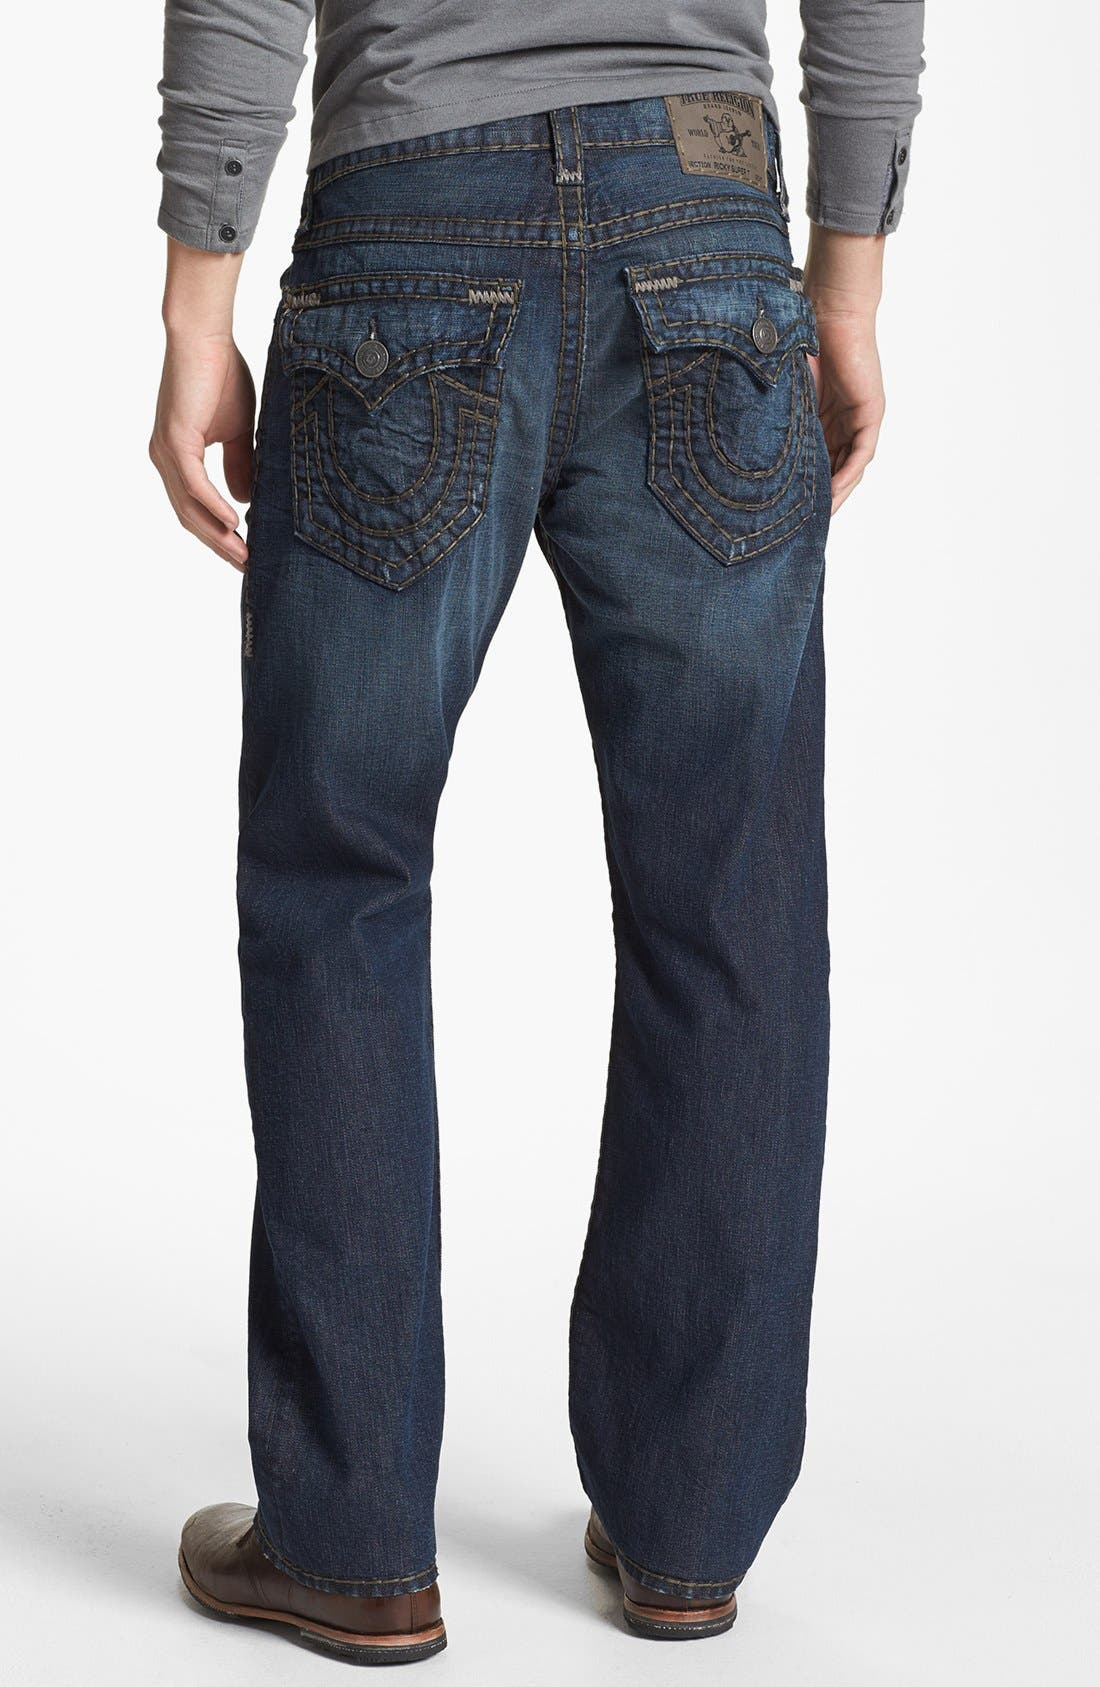 Alternate Image 1 Selected - True Religion Brand Jeans 'Ricky - Super T' Straight Leg Jeans (Asjd Breaking Grounds)